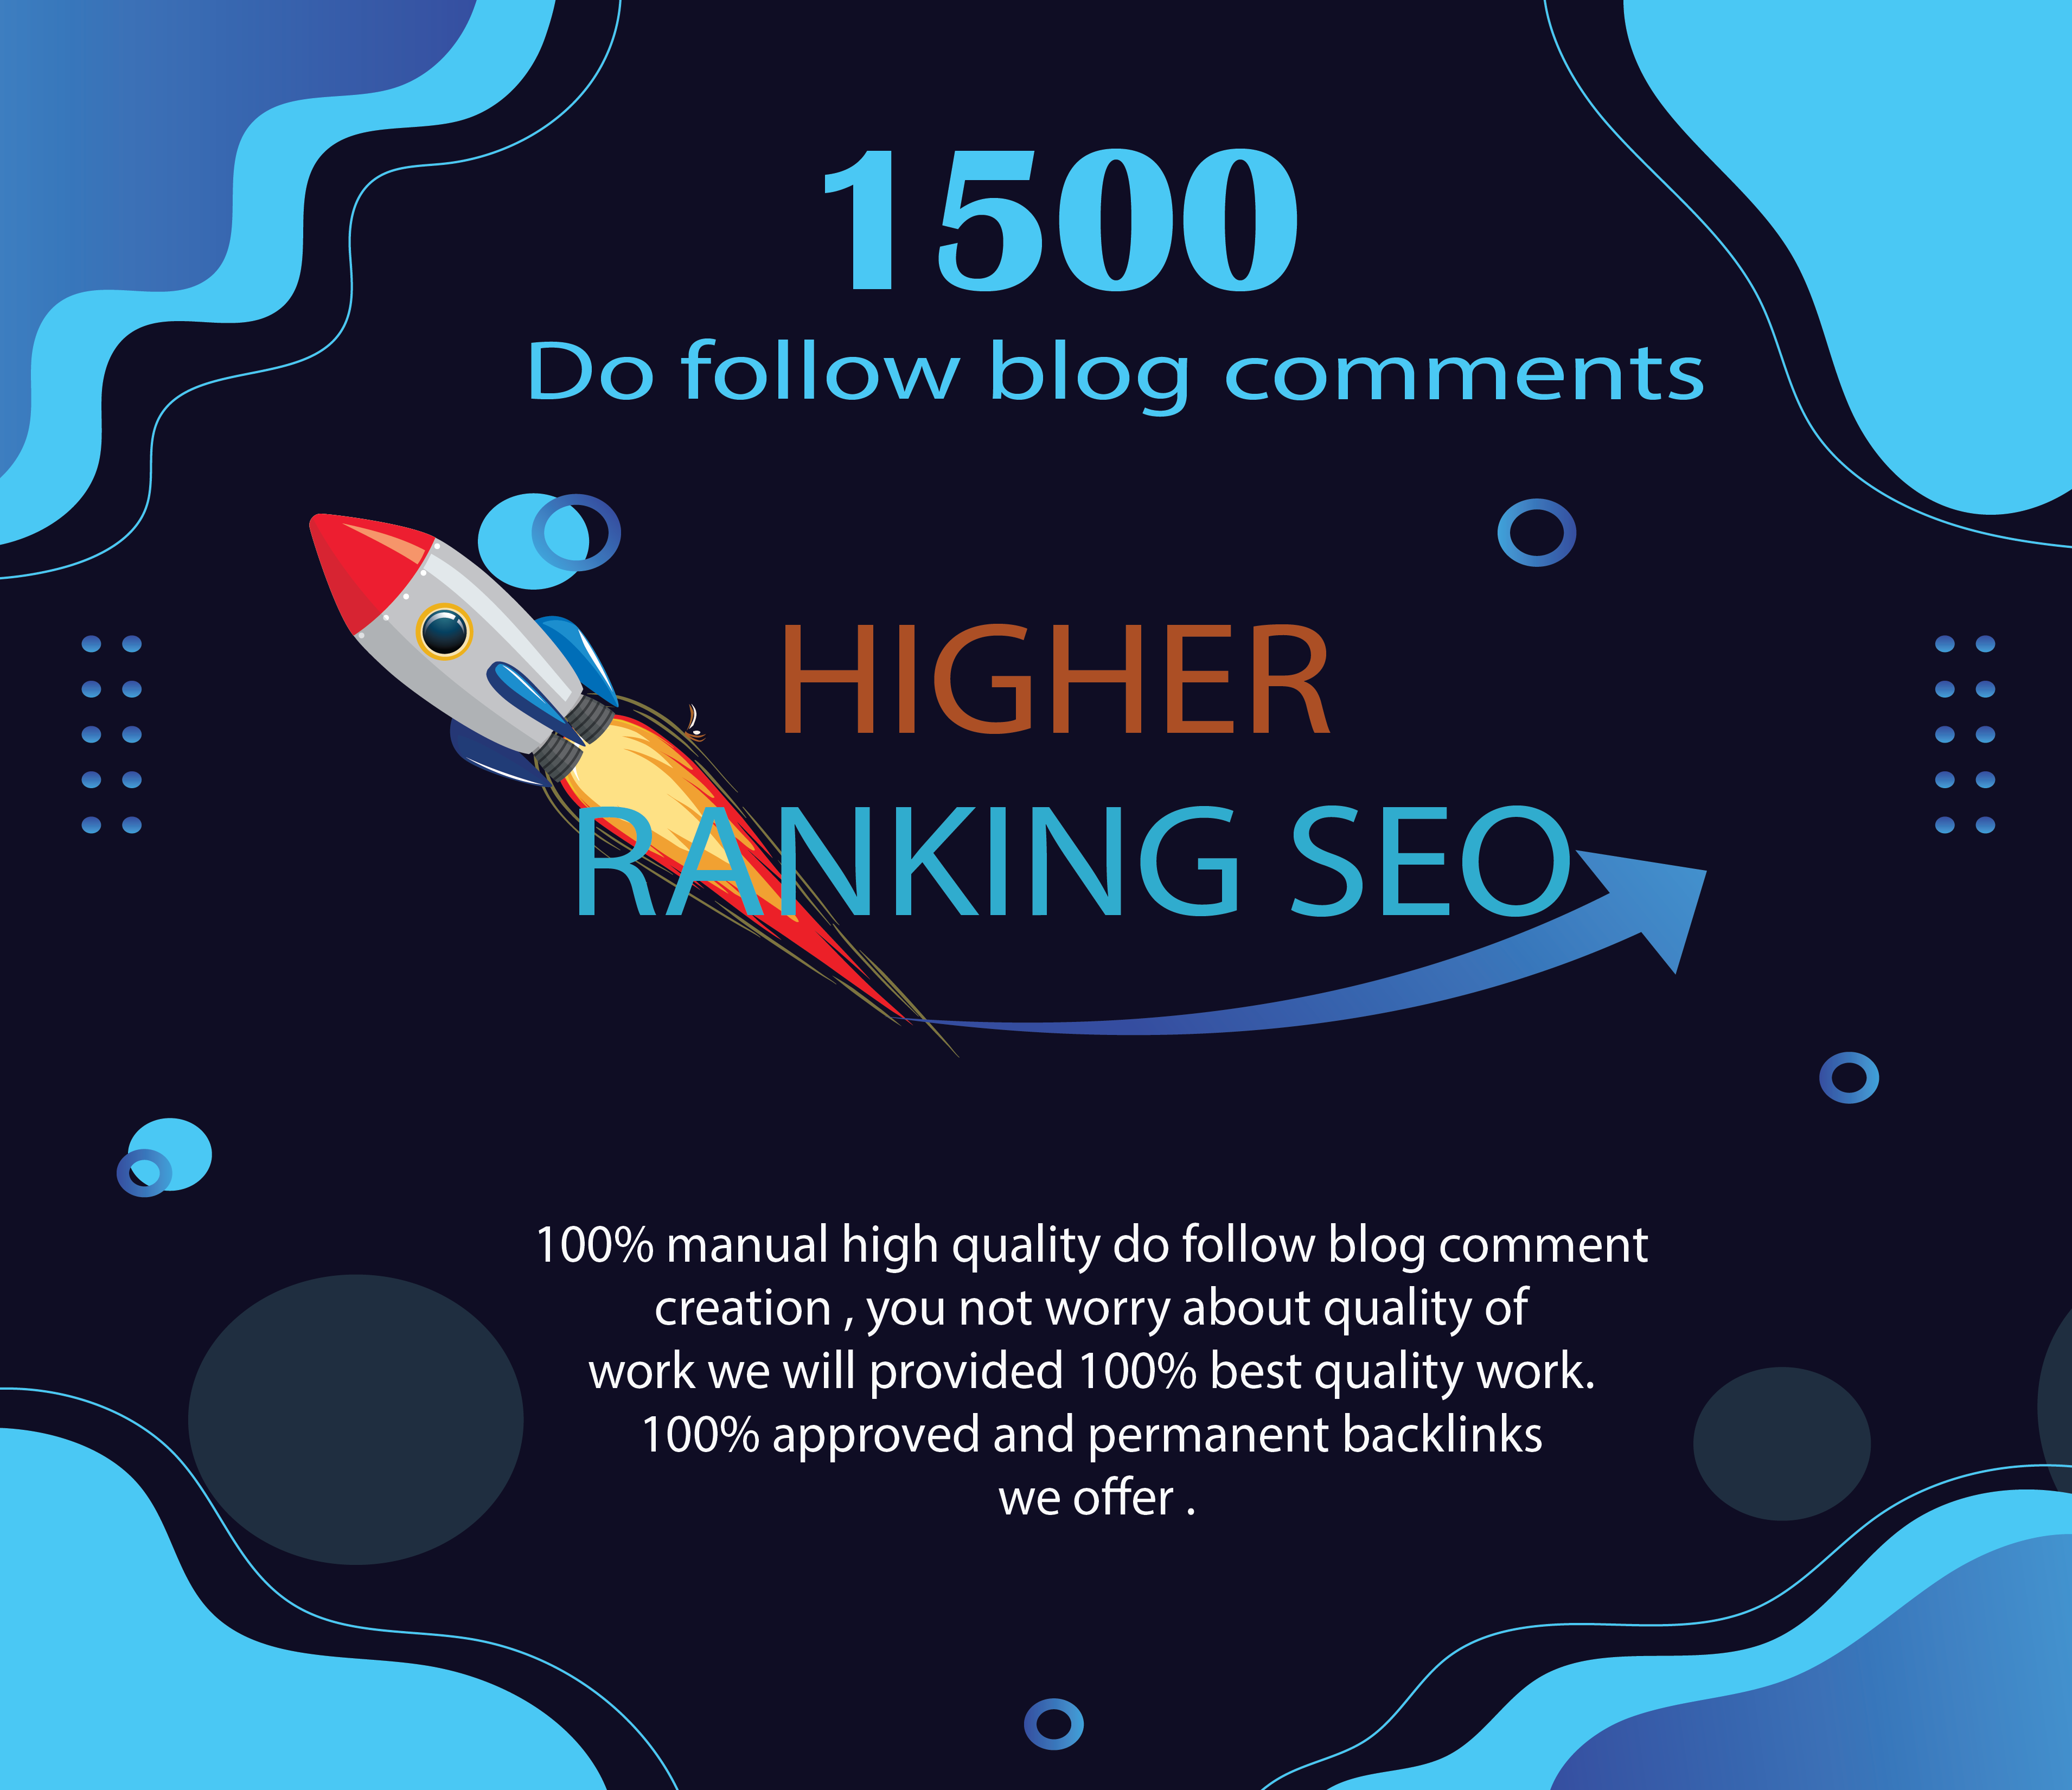 I will provide 1500 unique quality blog comments backlinks to an excellent domain